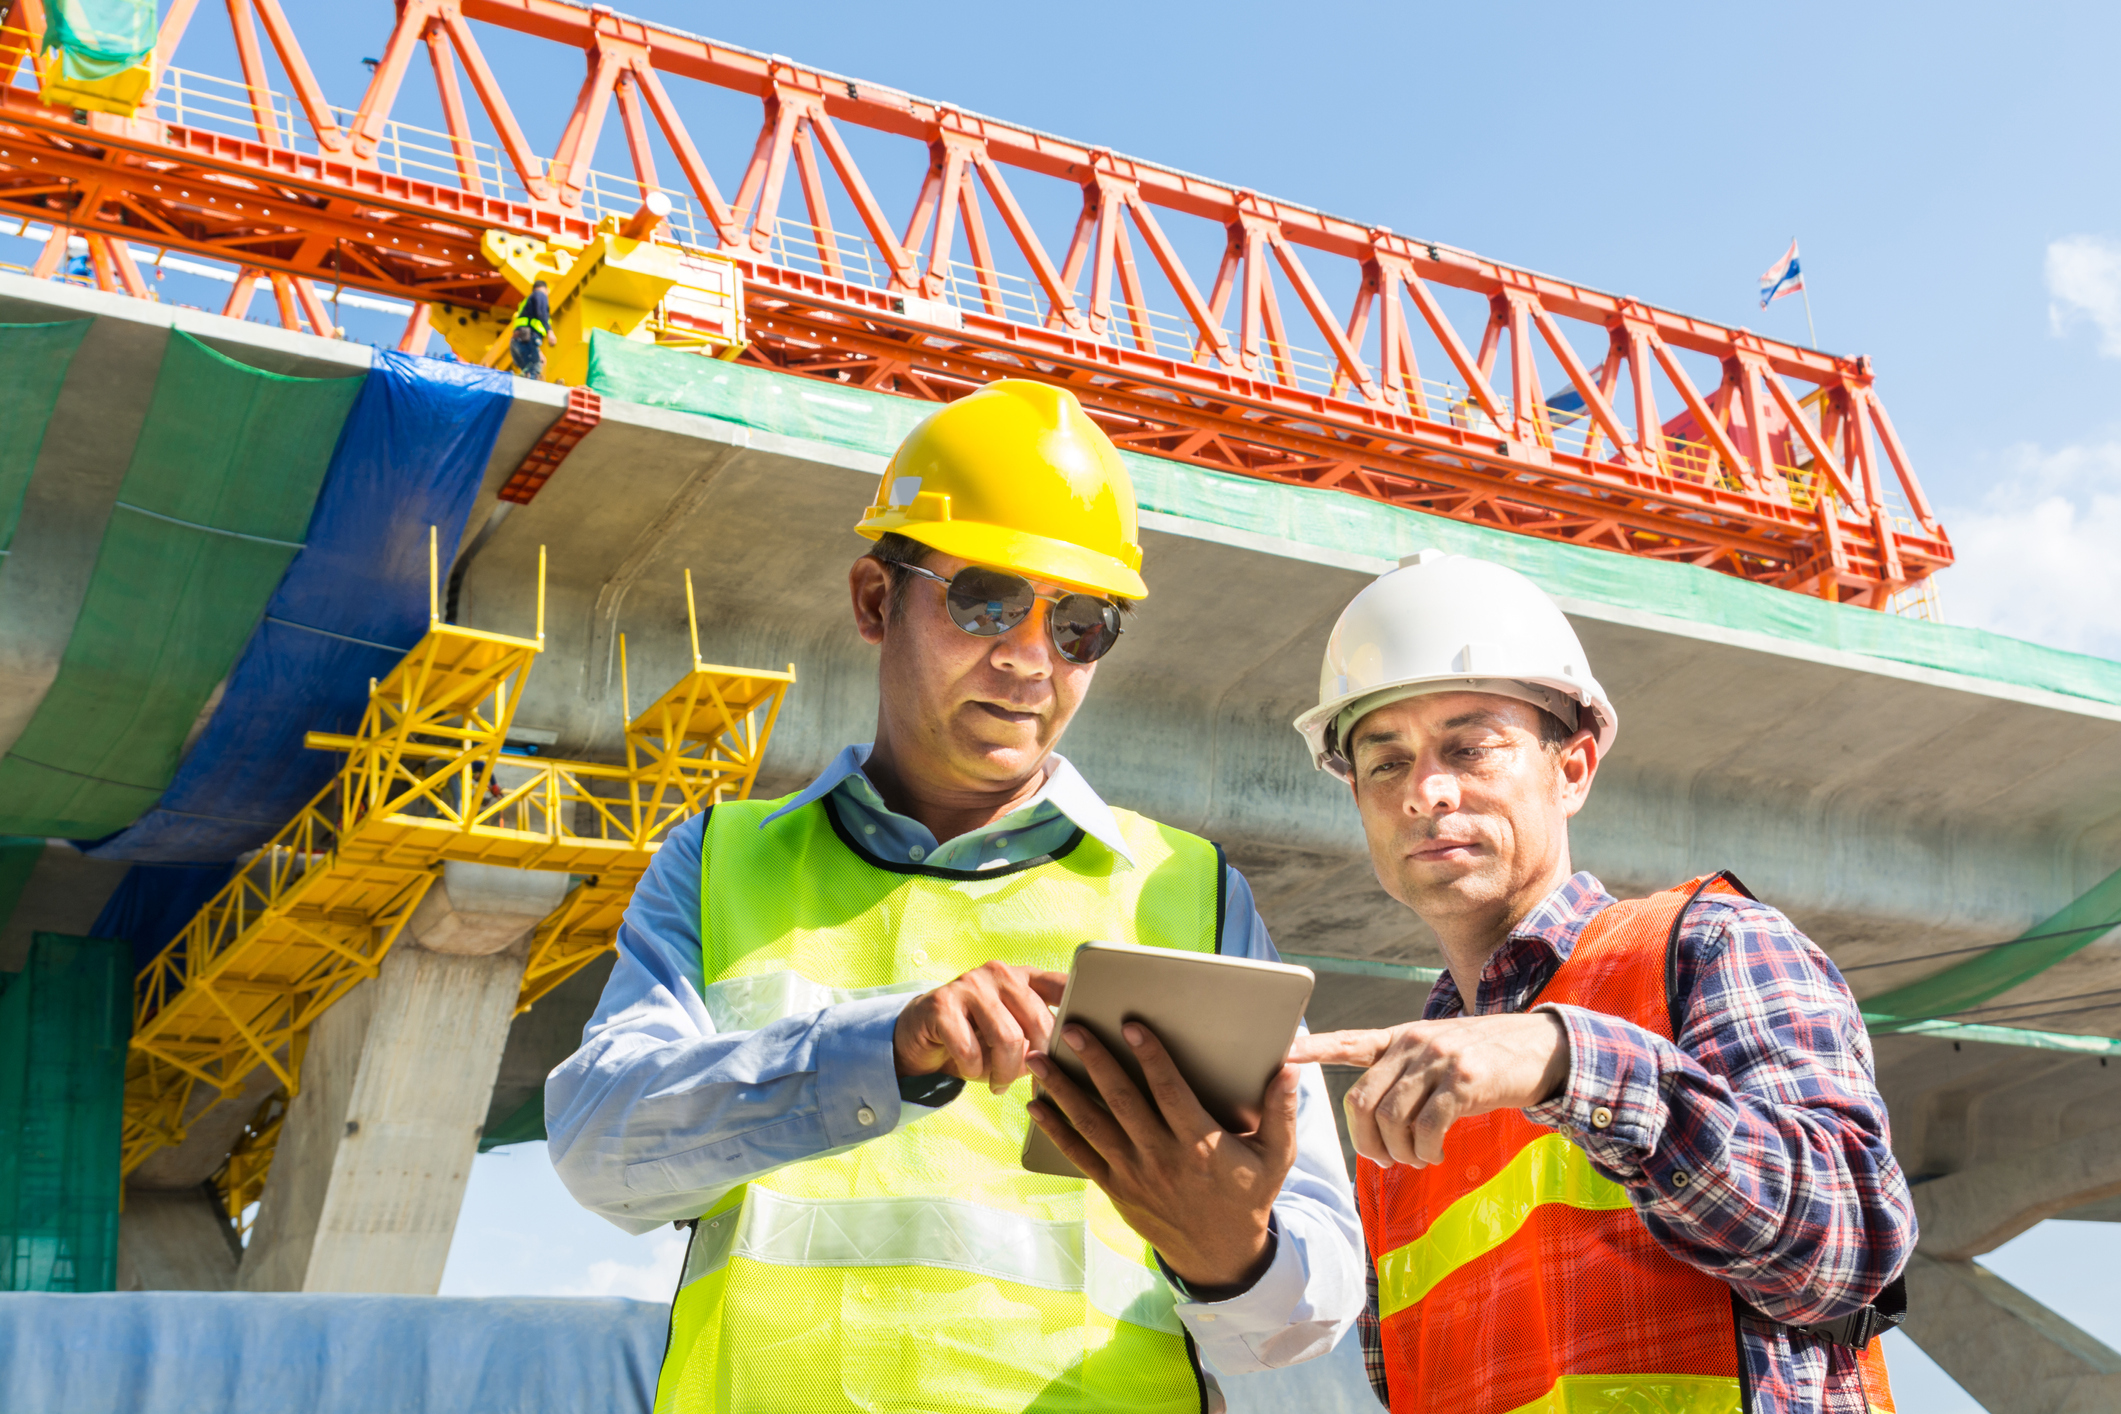 Architect-and-Engineer-working-Together-with-Digital-Wireless-Tablet-956818350_2125x1416